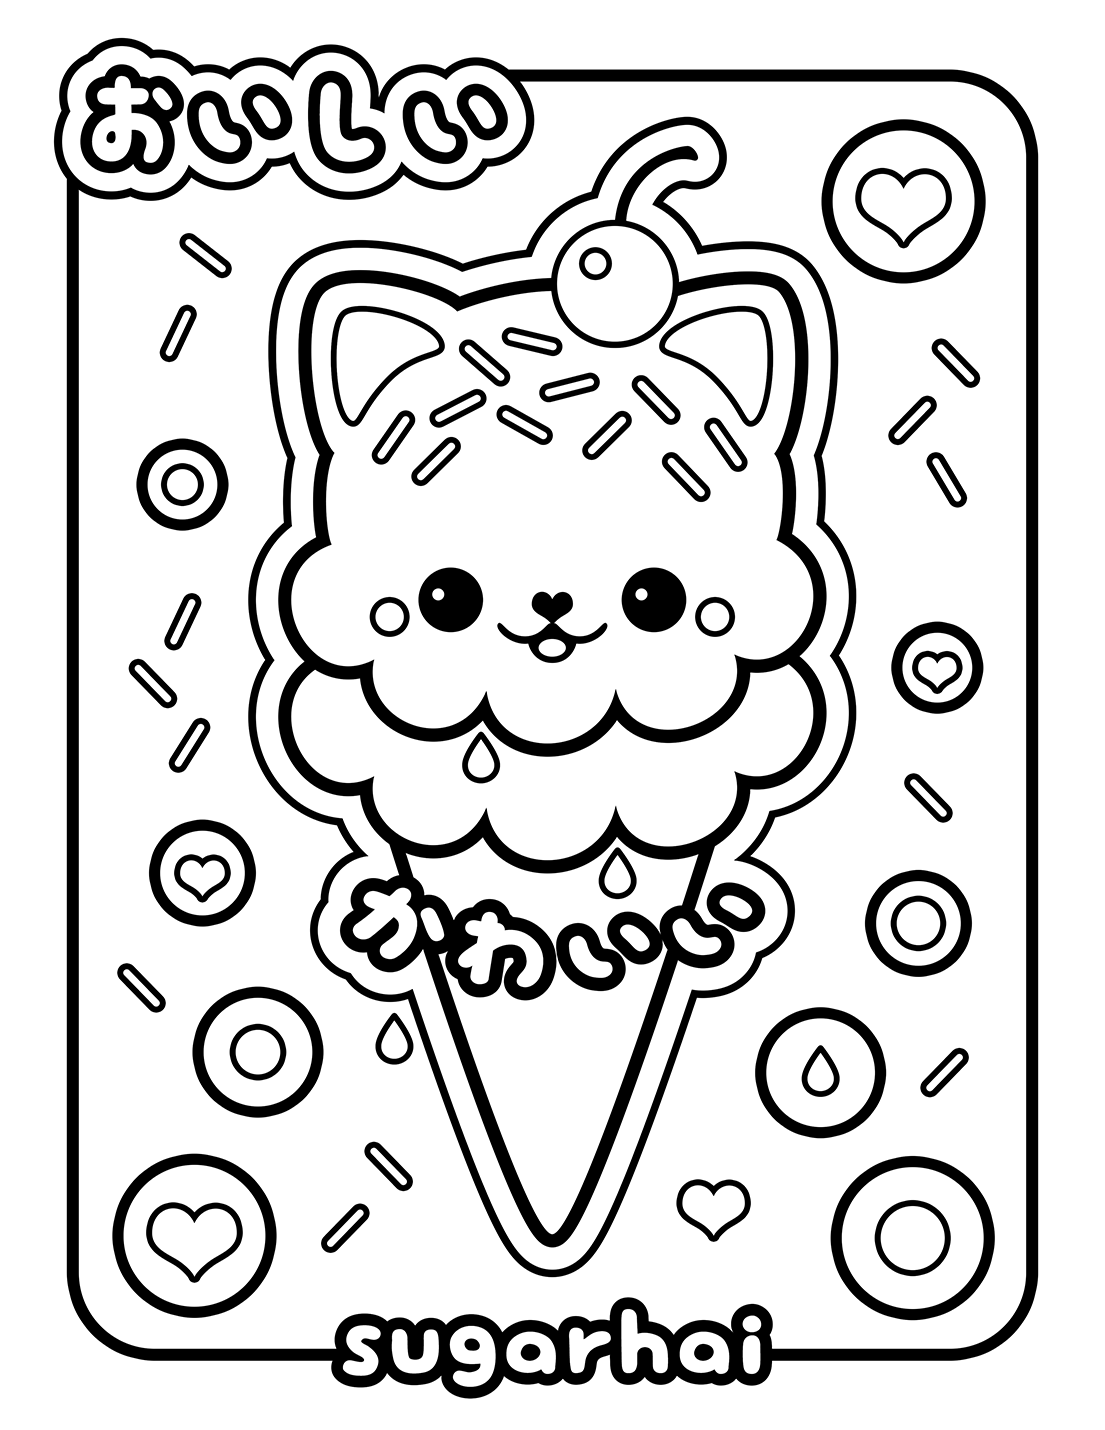 Free Ice Cream Cat Coloring Page Ice Cream Coloring Pages Cupcake Coloring Pages Free Kids Coloring Pages